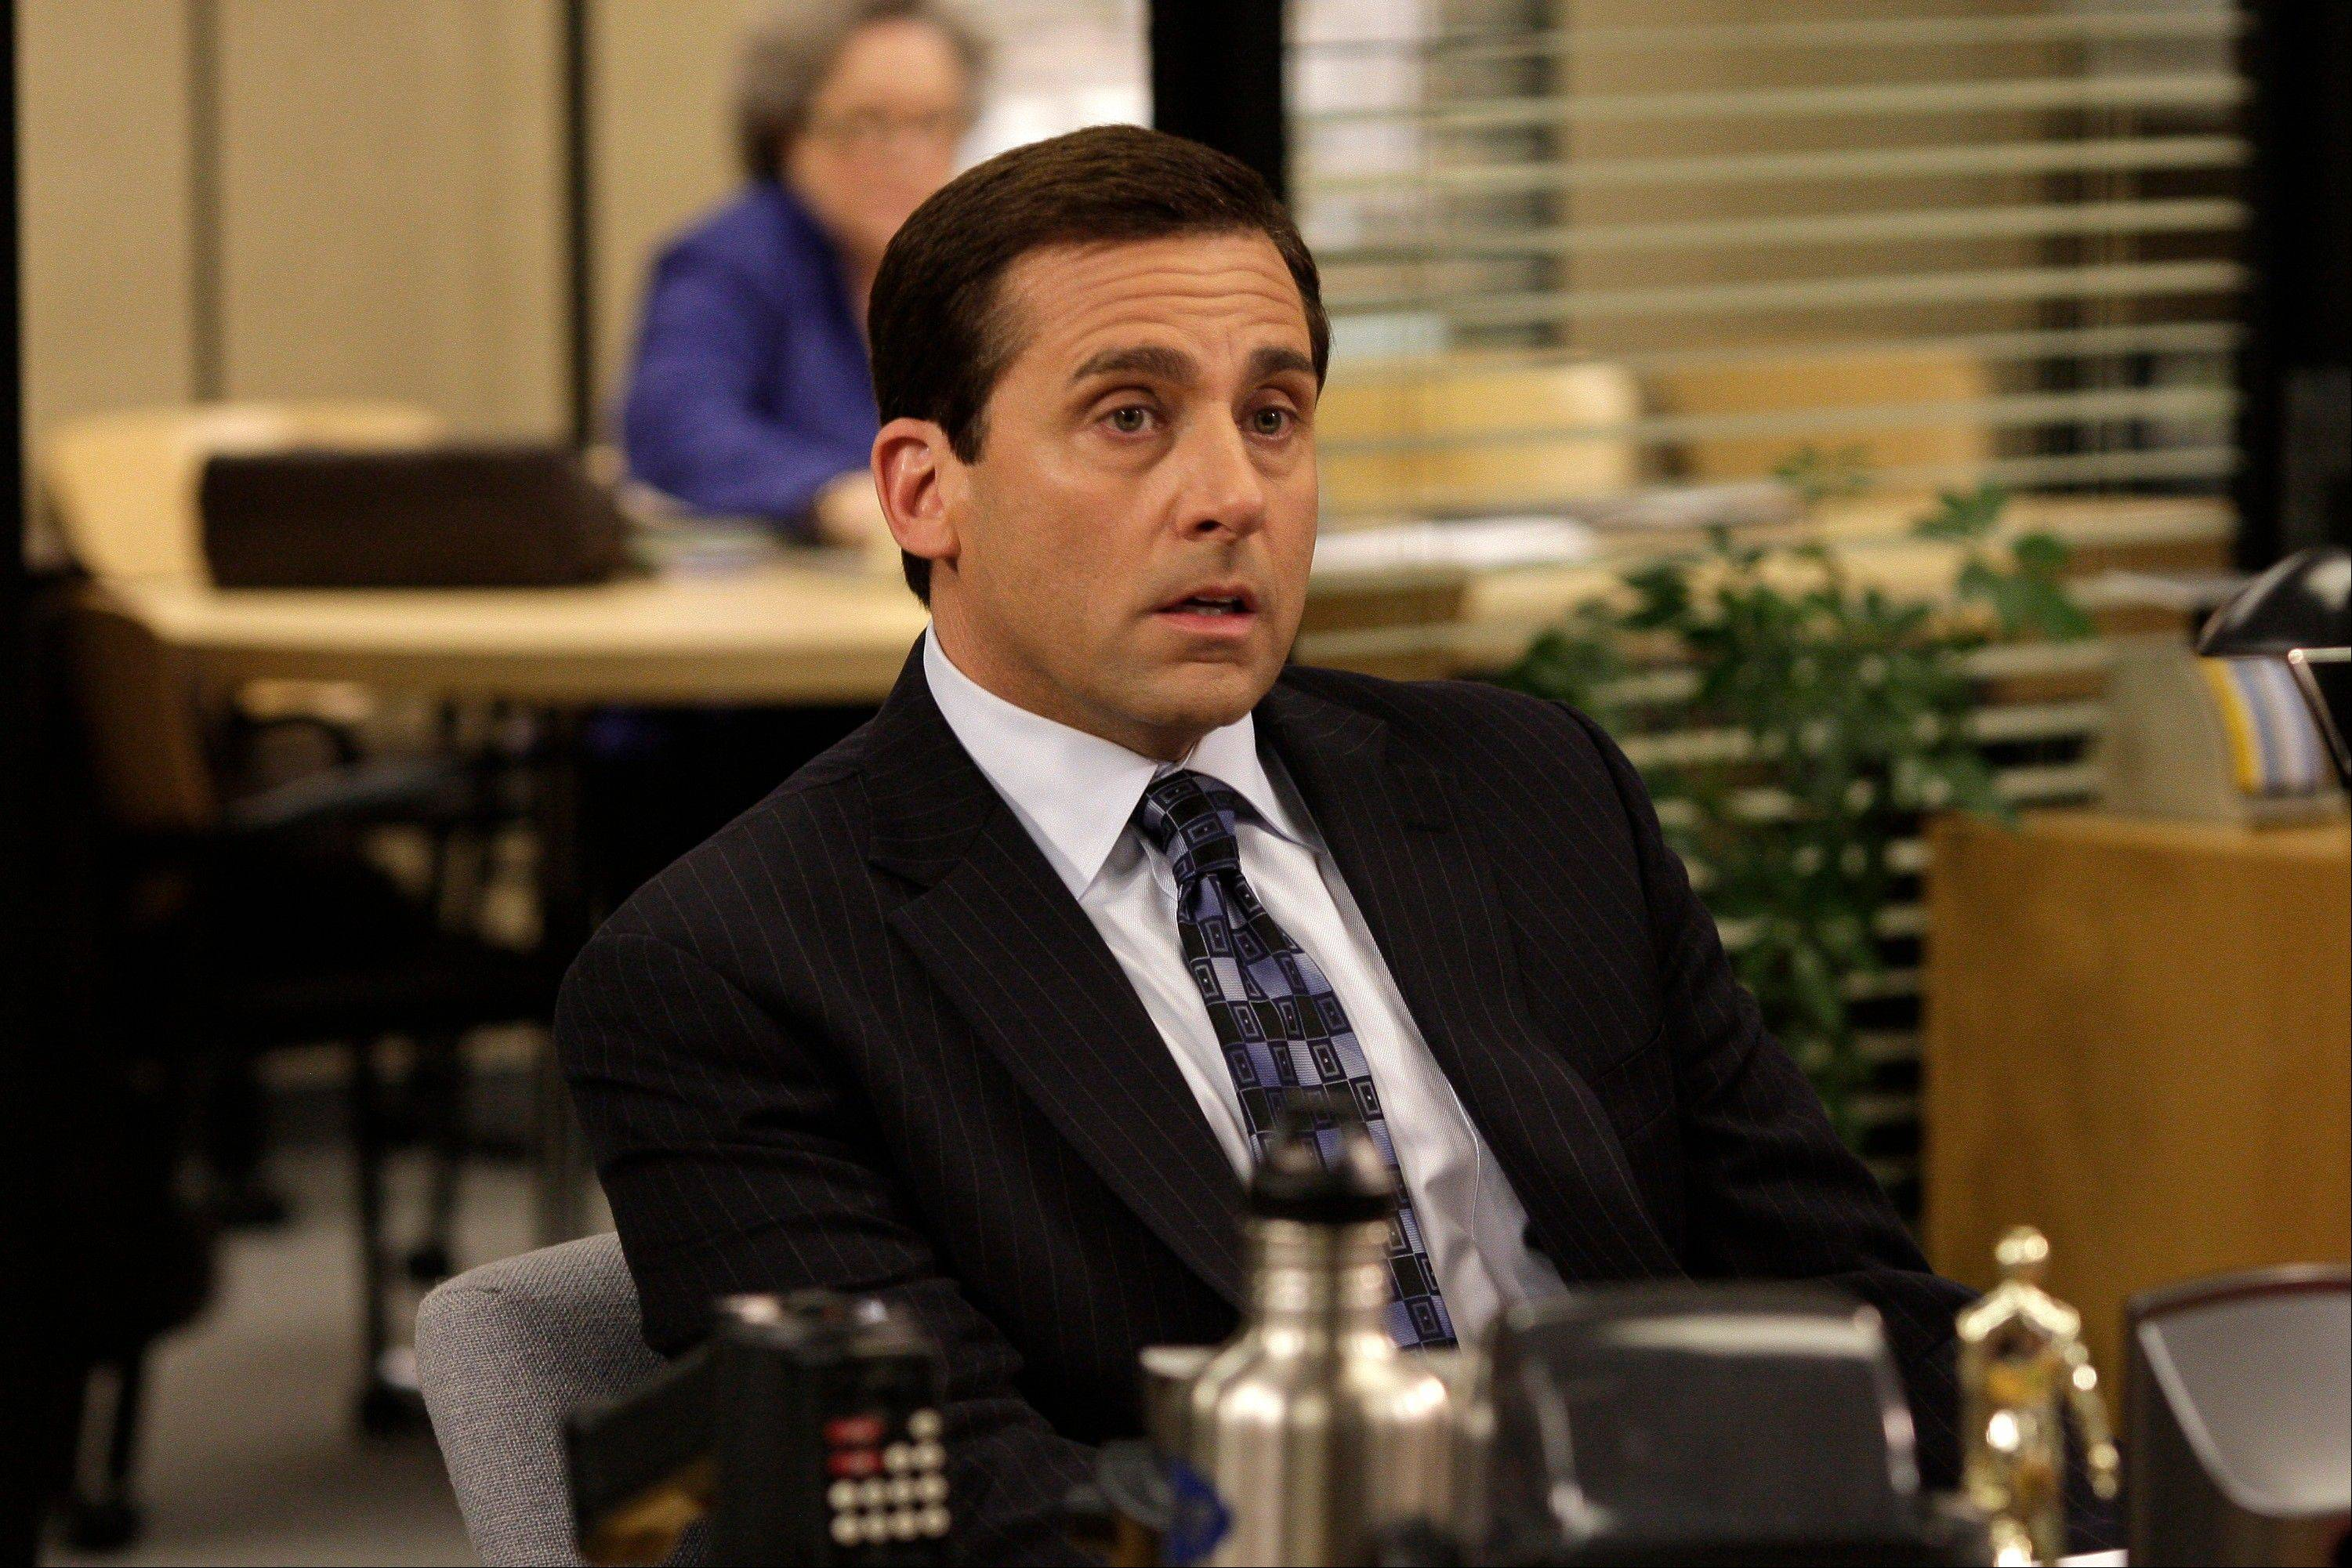 "The NBC comedy ""The Office,"" which starred Steve Carell as regional manager Michael Scott, will conclude business at Dunder Mifflin after the upcoming ninth season it was announced Tuesday."